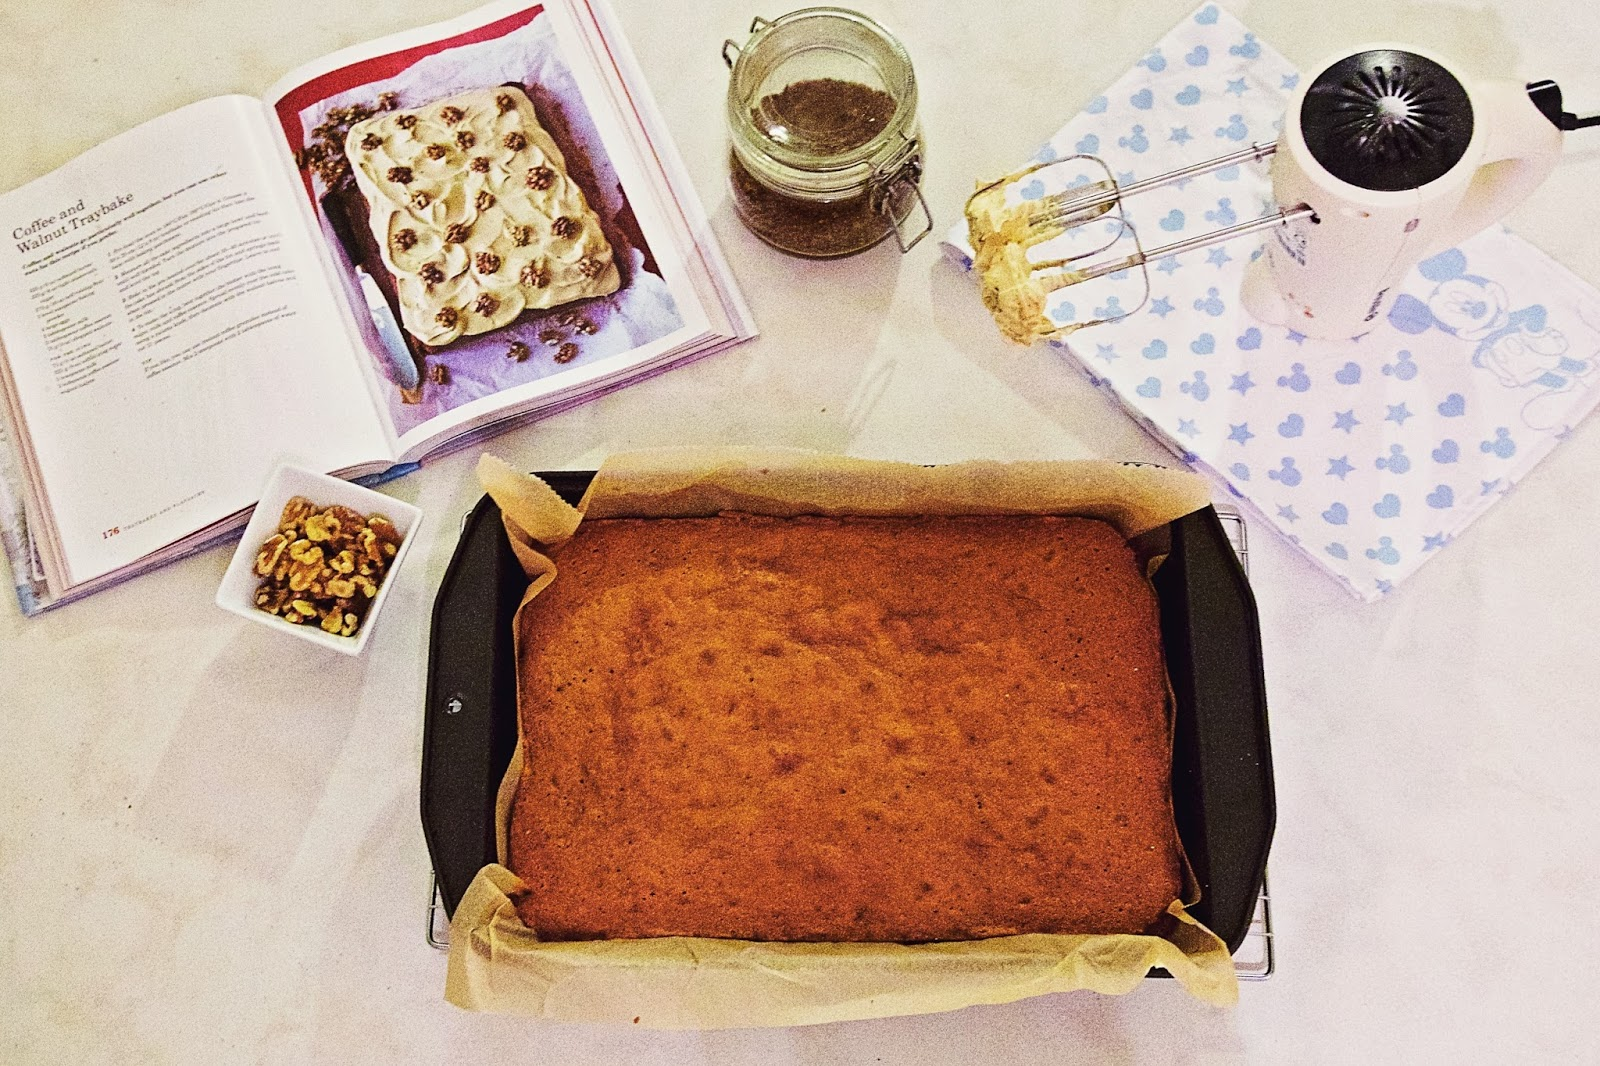 Preparation for Mary Berry's Coffee and Walnut Traybake.